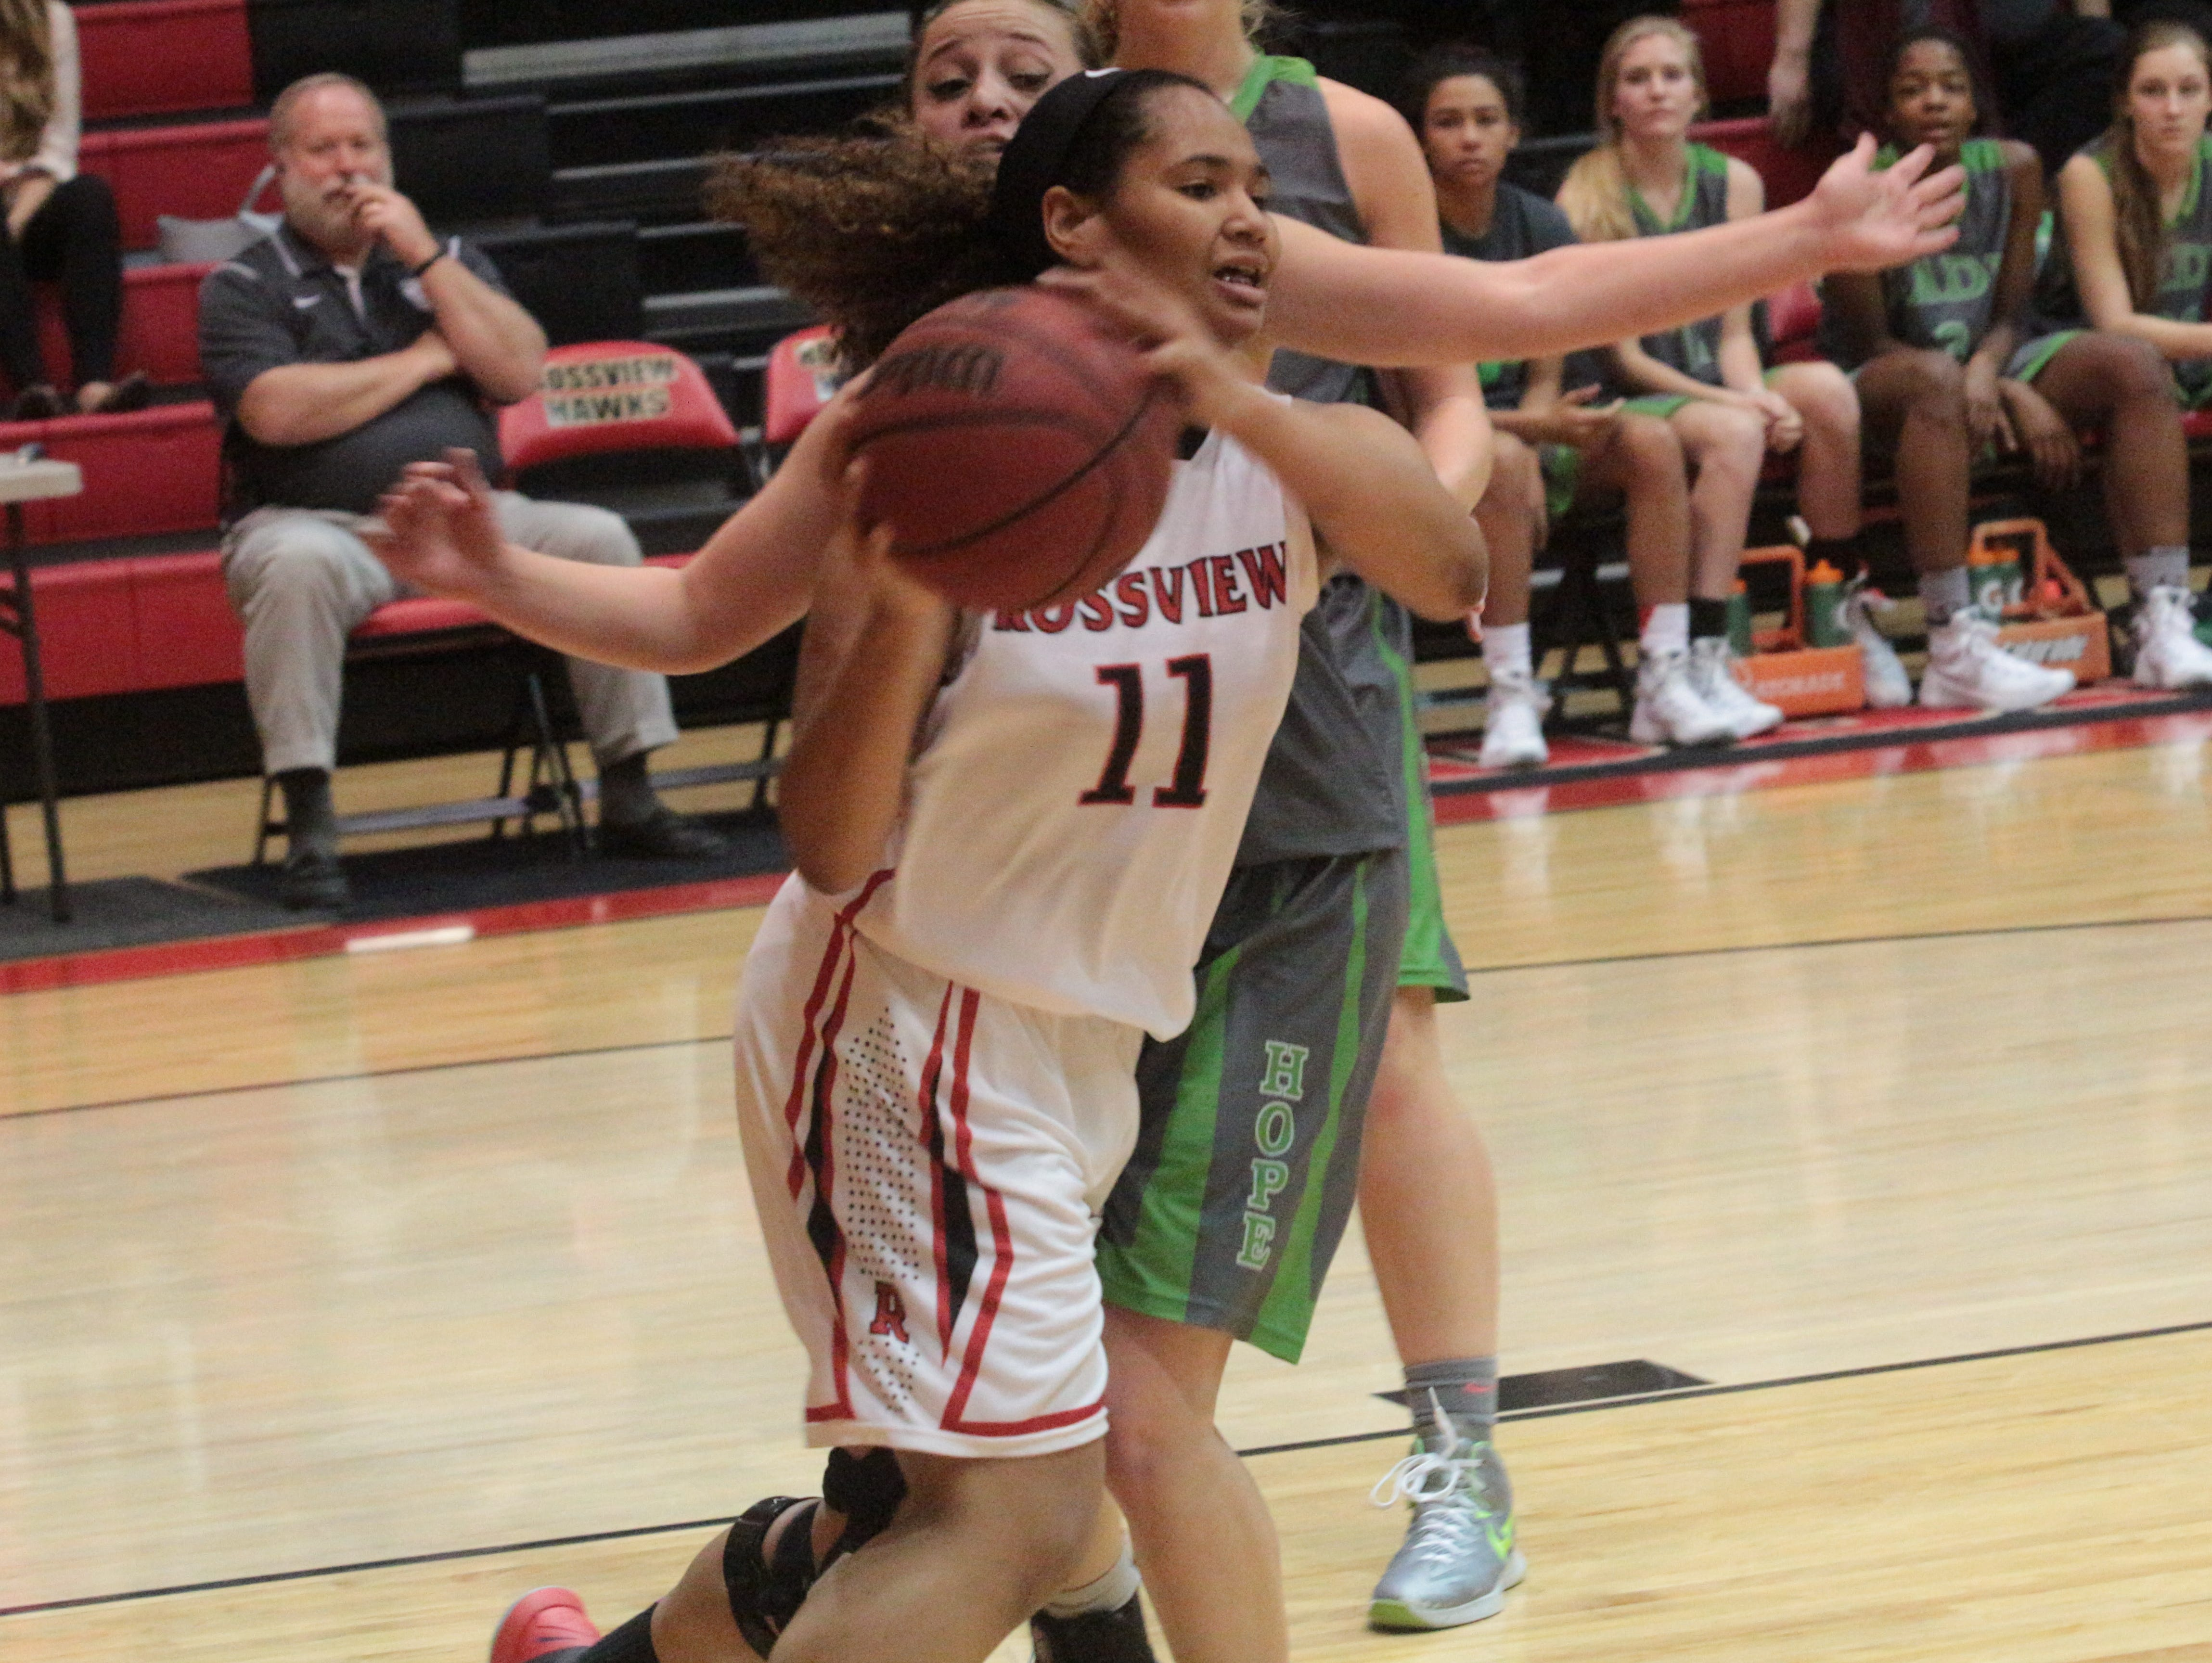 Rossview's Karle Pace (11) looks to pass the ball back out to the backcourt during the Lady Hawks' varsity game against Station Camp Tuesday night.